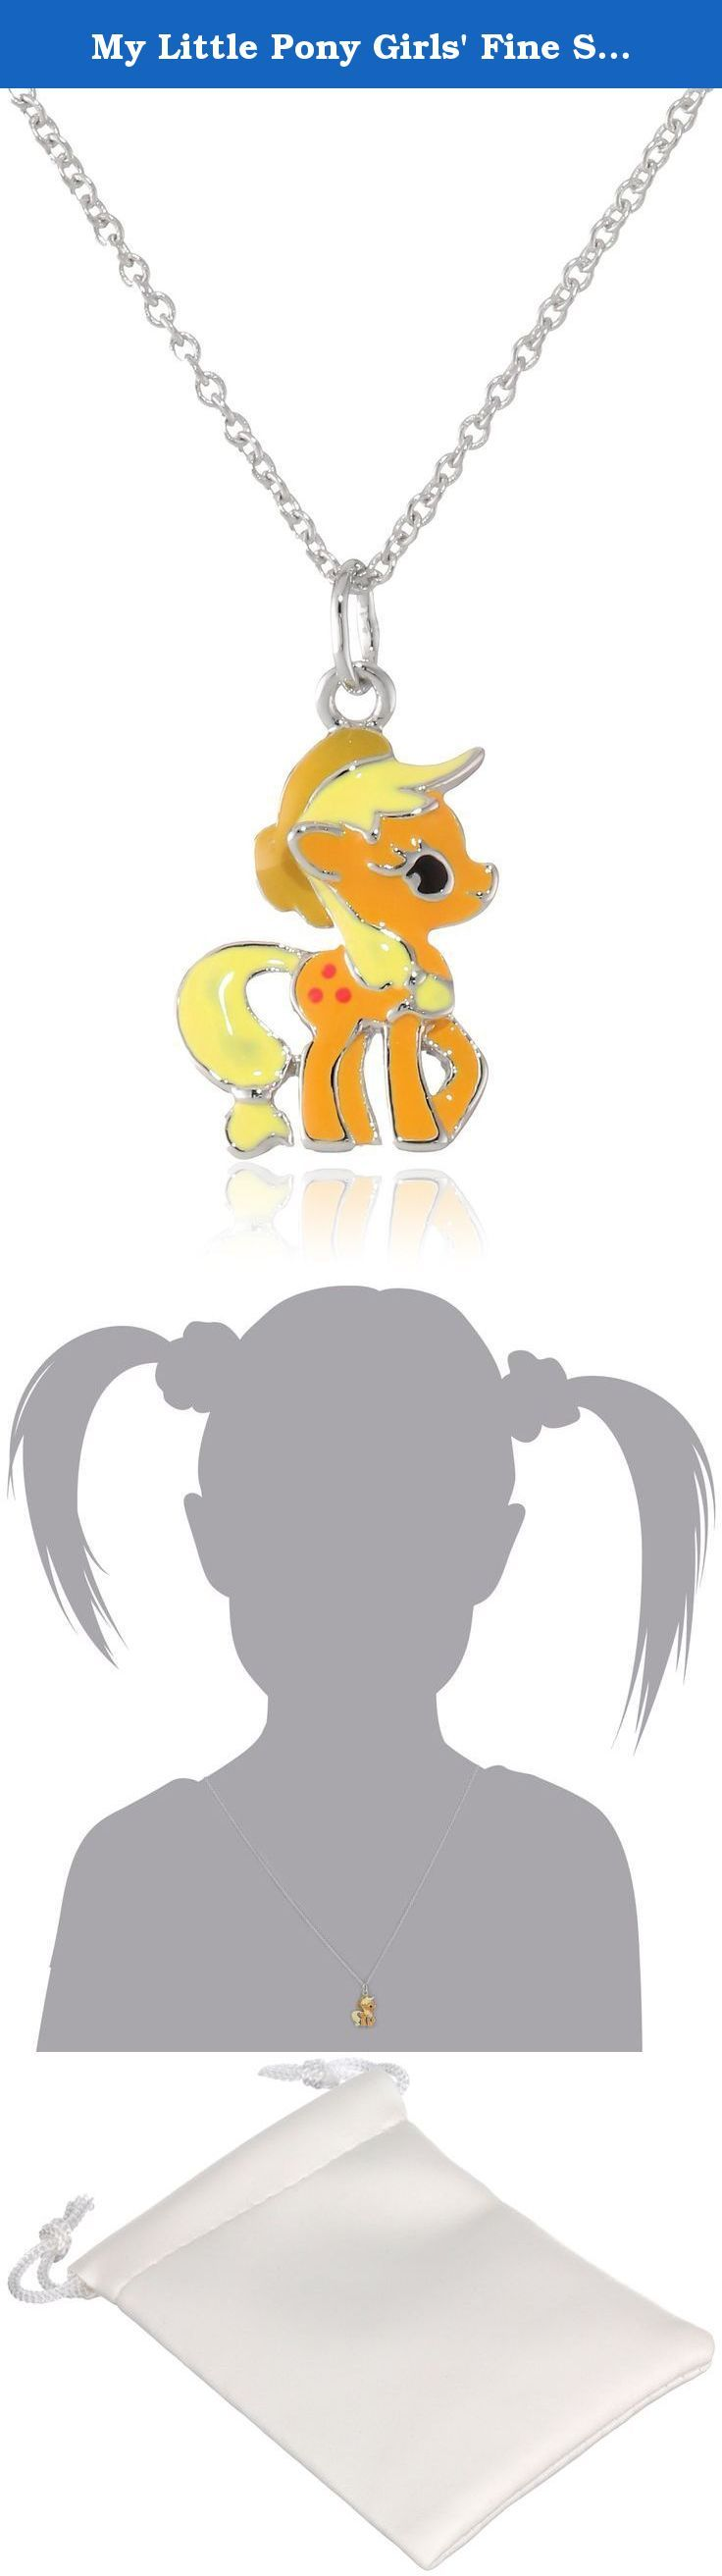 """My Little Pony Girls' Fine Silver-Plated Applejack Pendant Necklace, 18"""". Rolo chain necklace in silver-plated finish featuring pendant of the pony Apple Jack with multi-tone epoxy filling. Spring-ring clasp closure. Imported."""